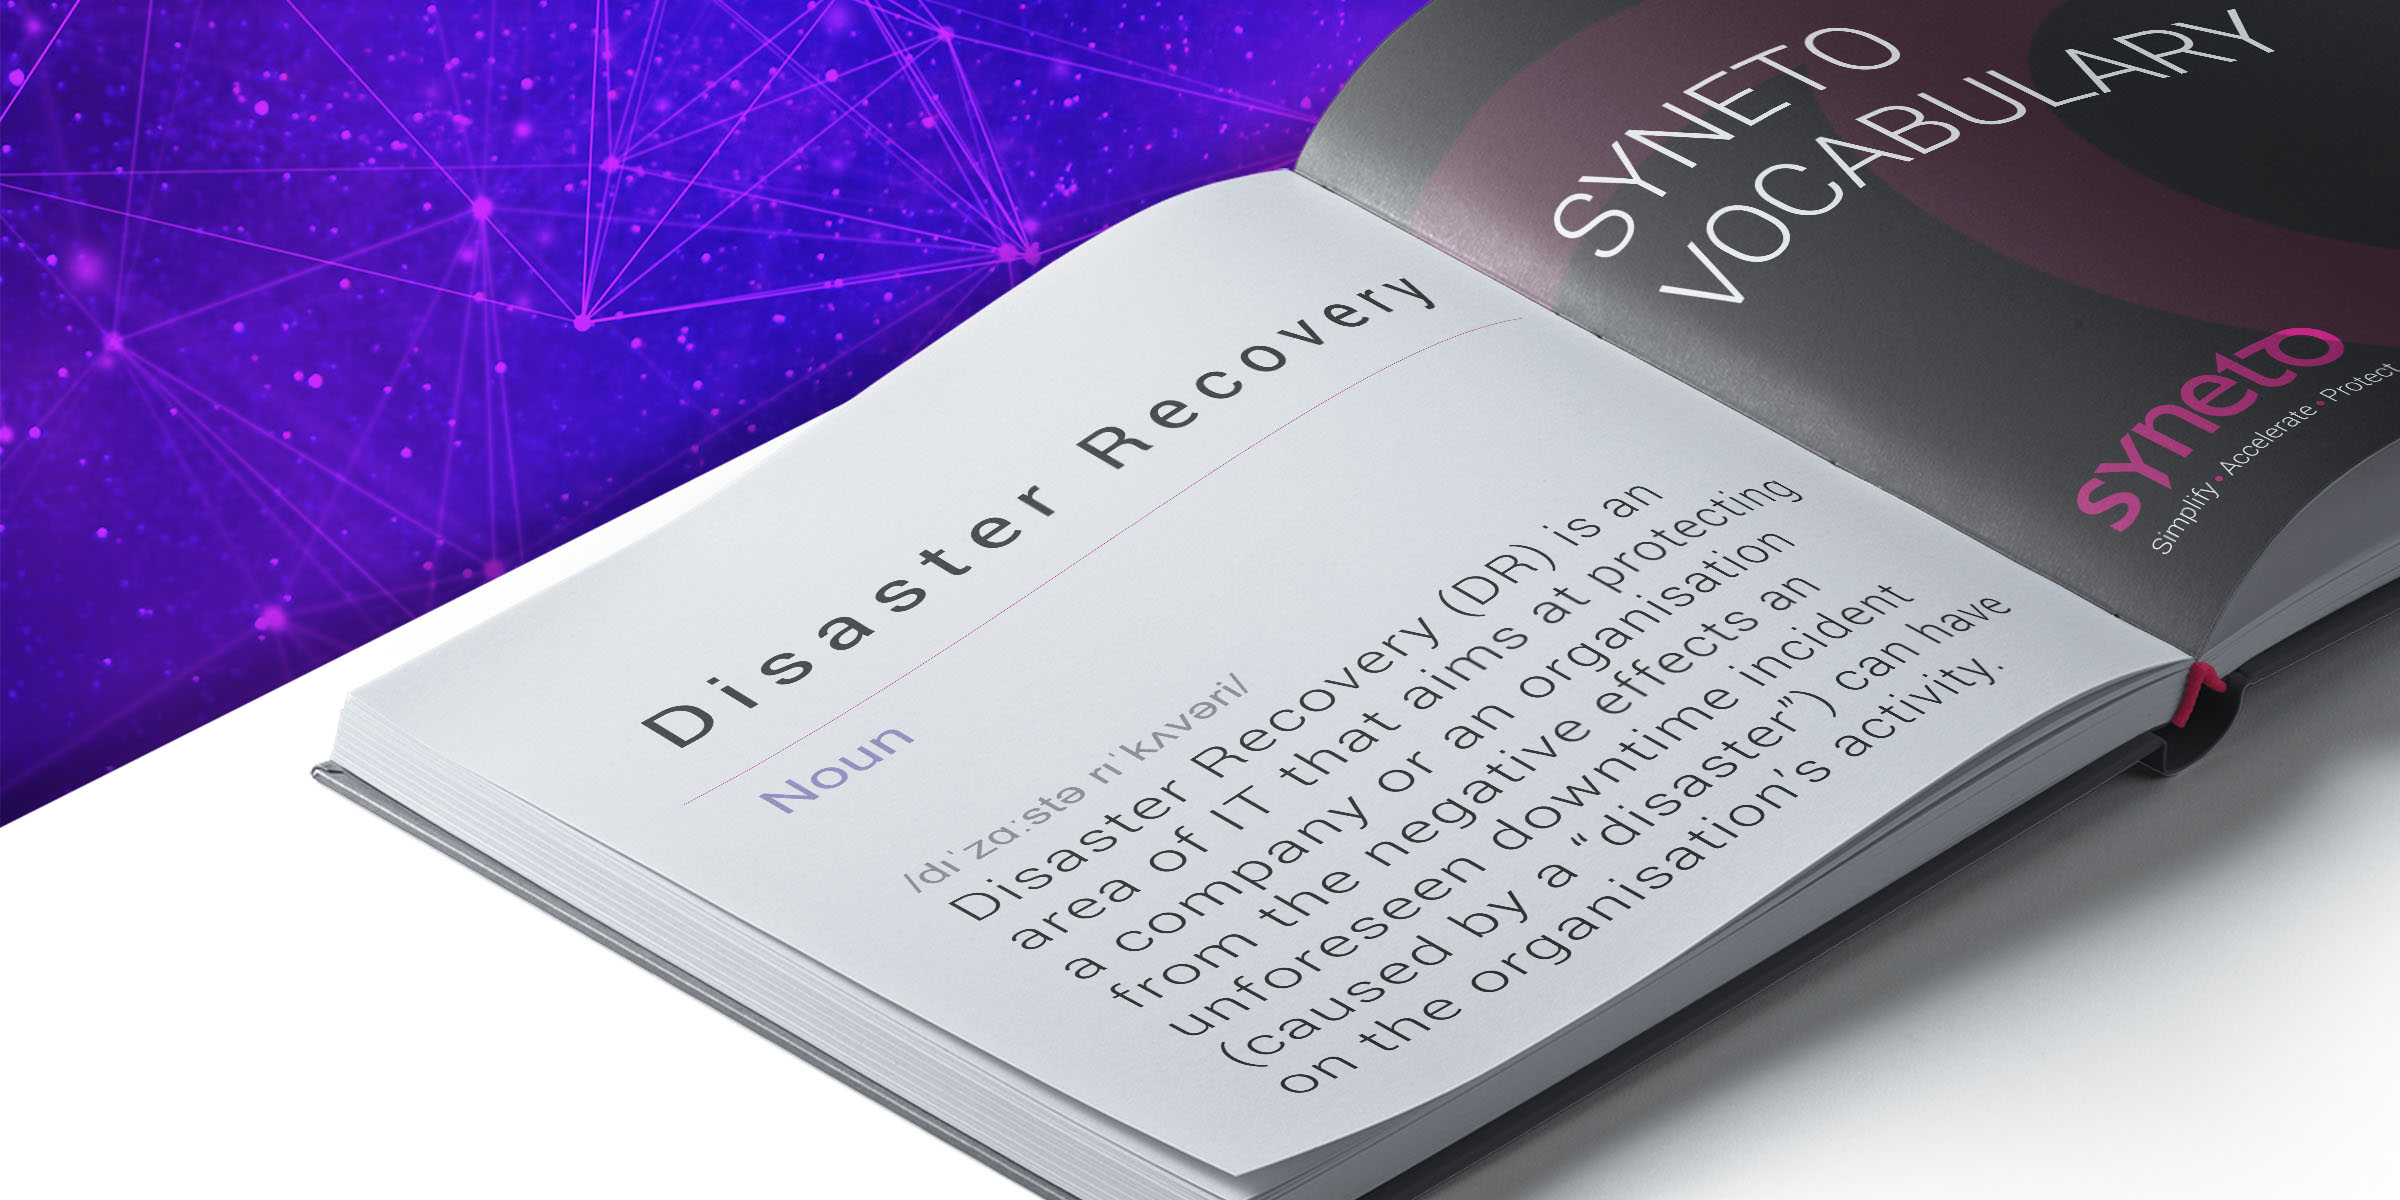 syneto-vocabulary-what-is-disaster-recovery